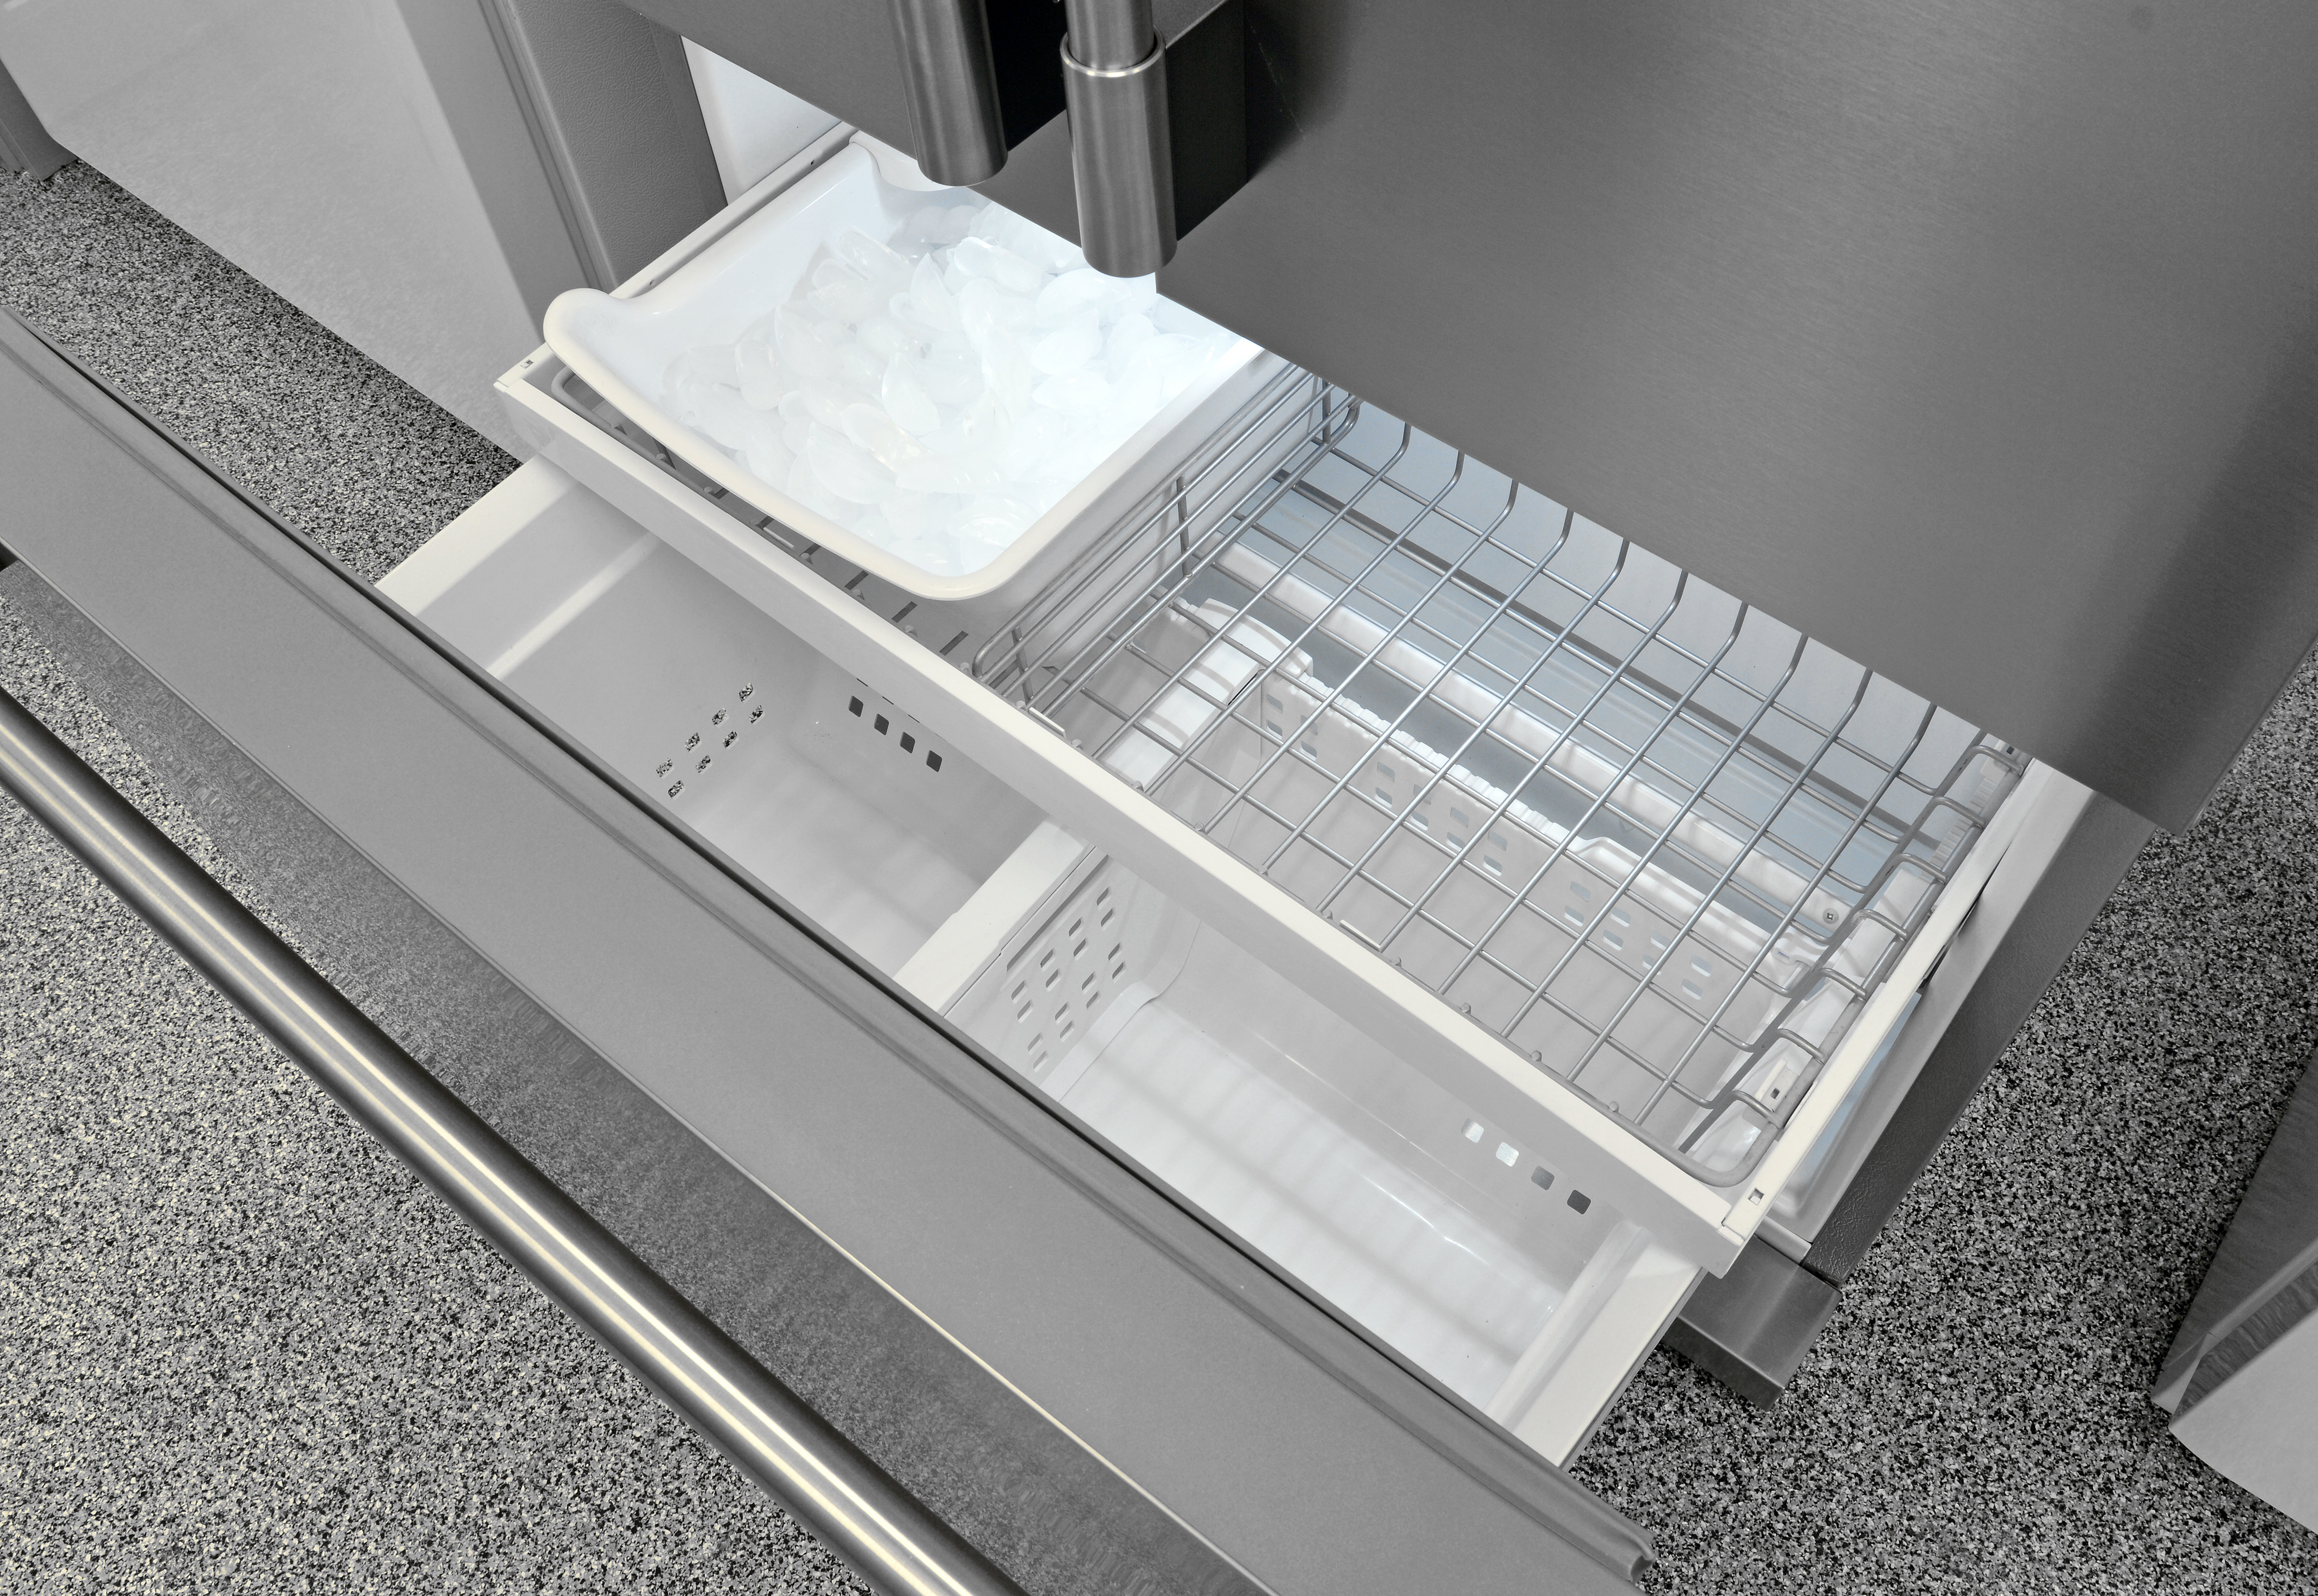 While the Frigidaire Professional FPBC2277RF's counter depth freezer may not be overly spacious, the sliding drawers and adjustable dividers help make it easy to access your food.